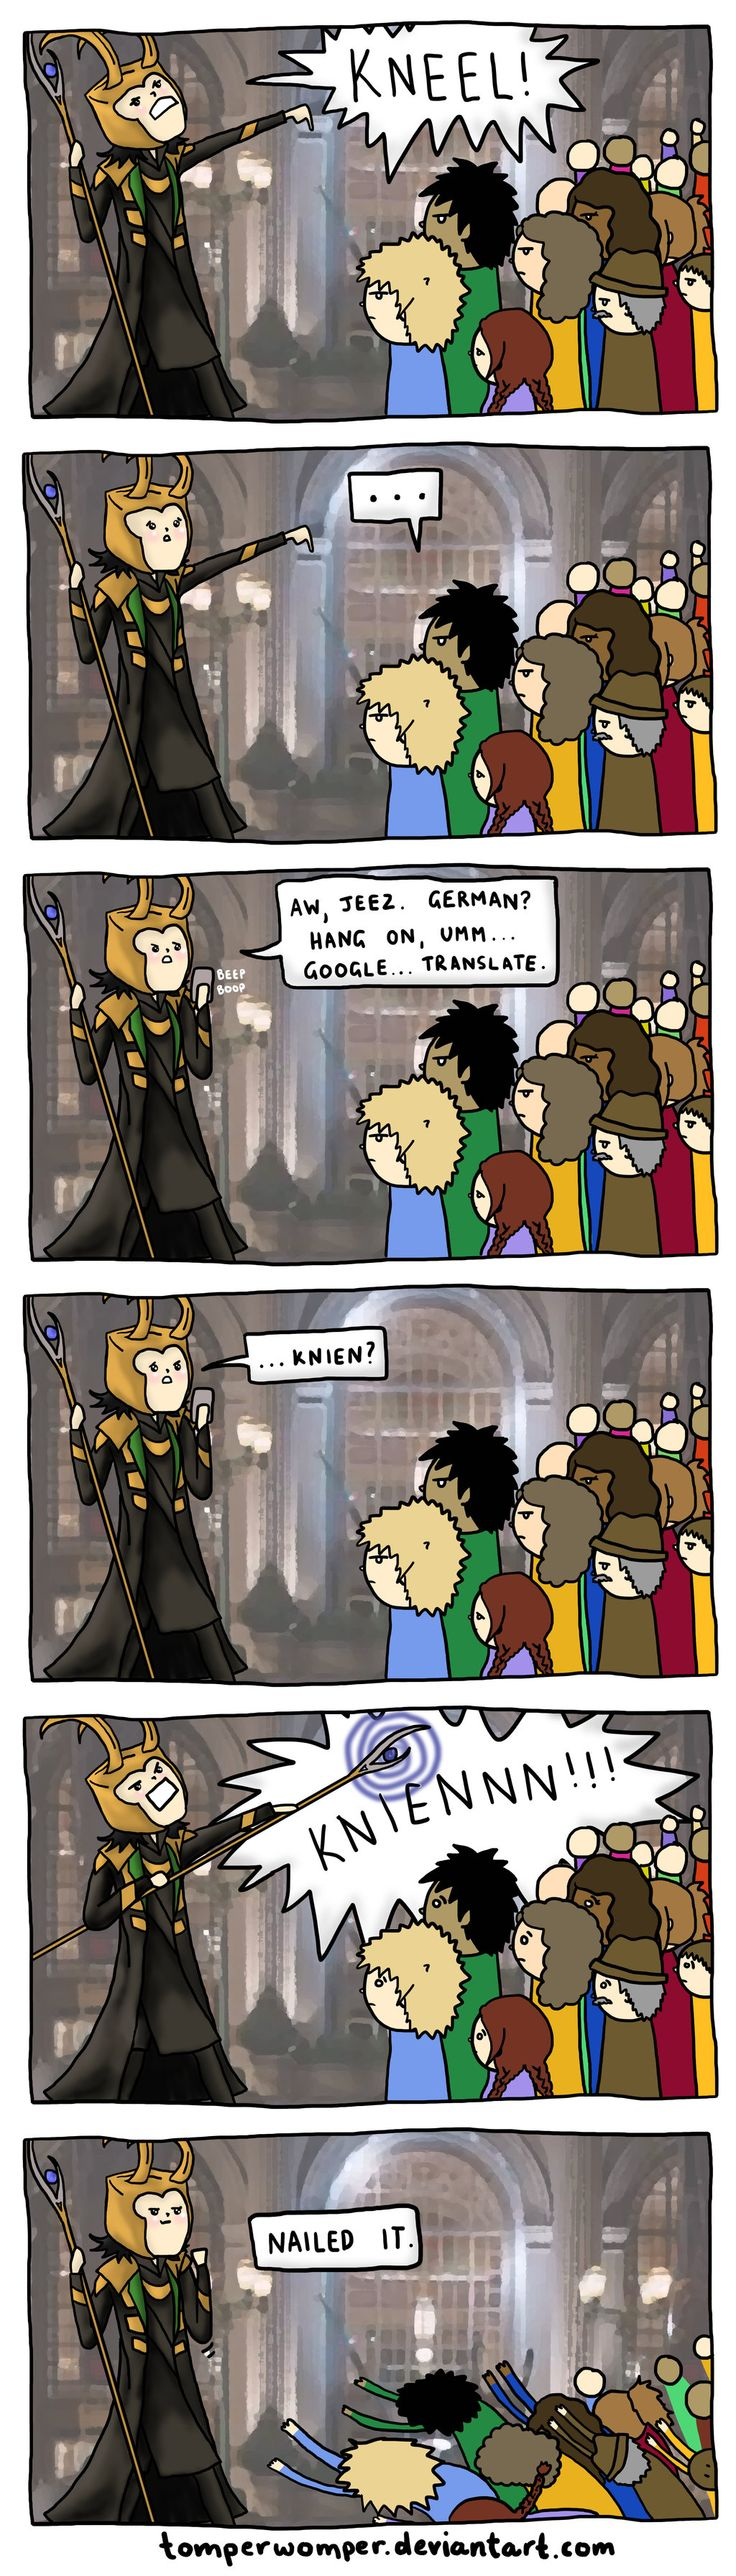 Loki is fluent in German with a little help from Google. KNEEL by TomperWomper.deviantart.com on @deviantART